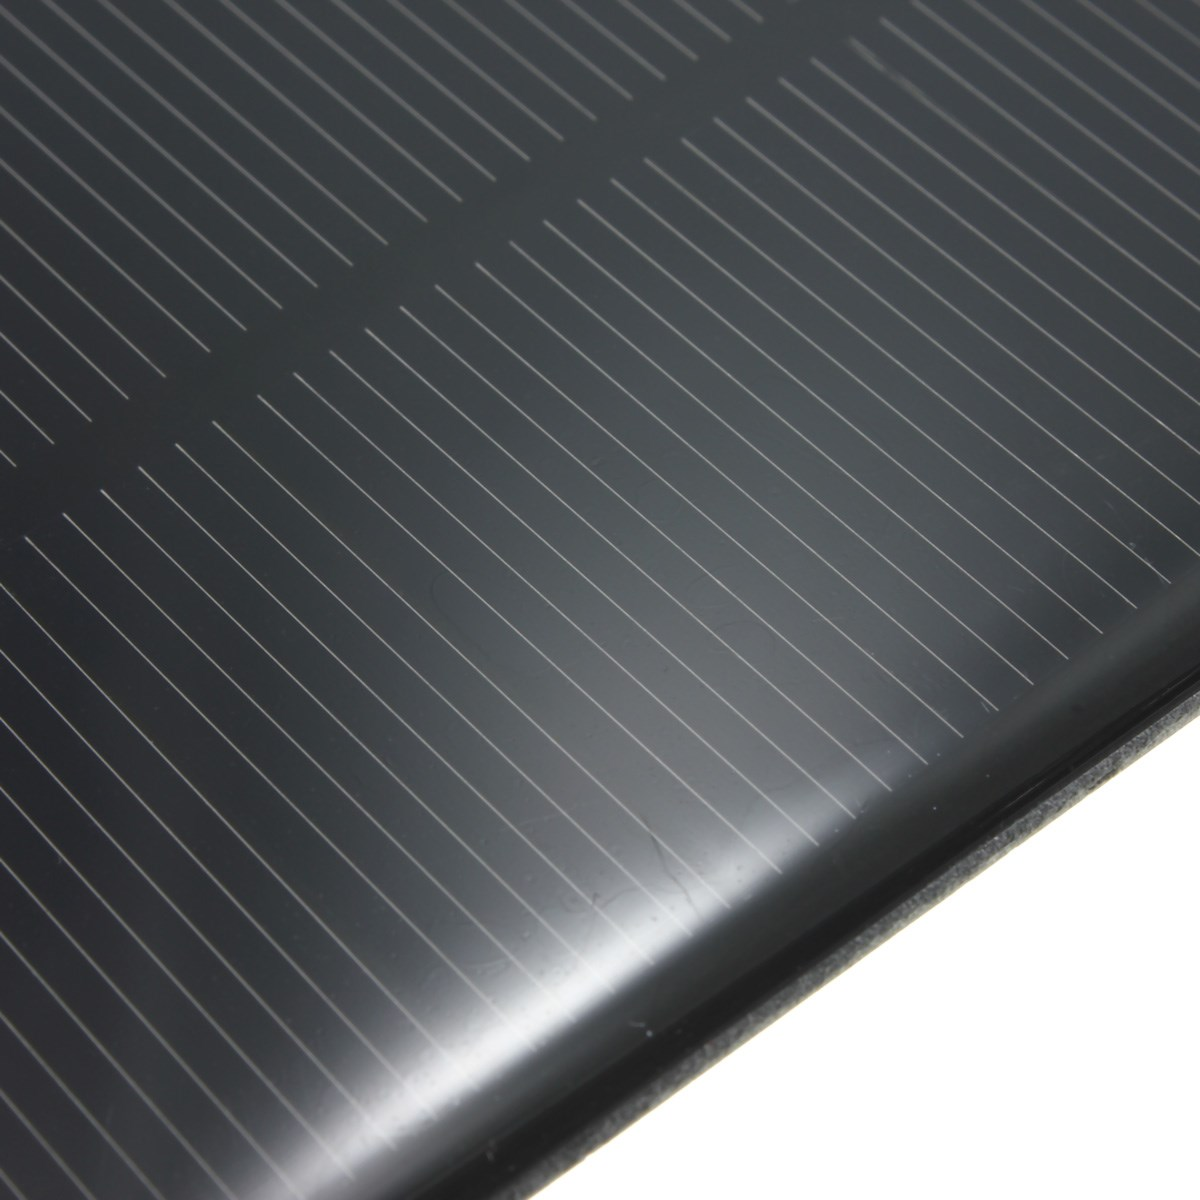 NEW 5V 1 25W 250mA Monocrystalline Silicon Epoxy Solar Panels Module kits Mini Solar Cells For